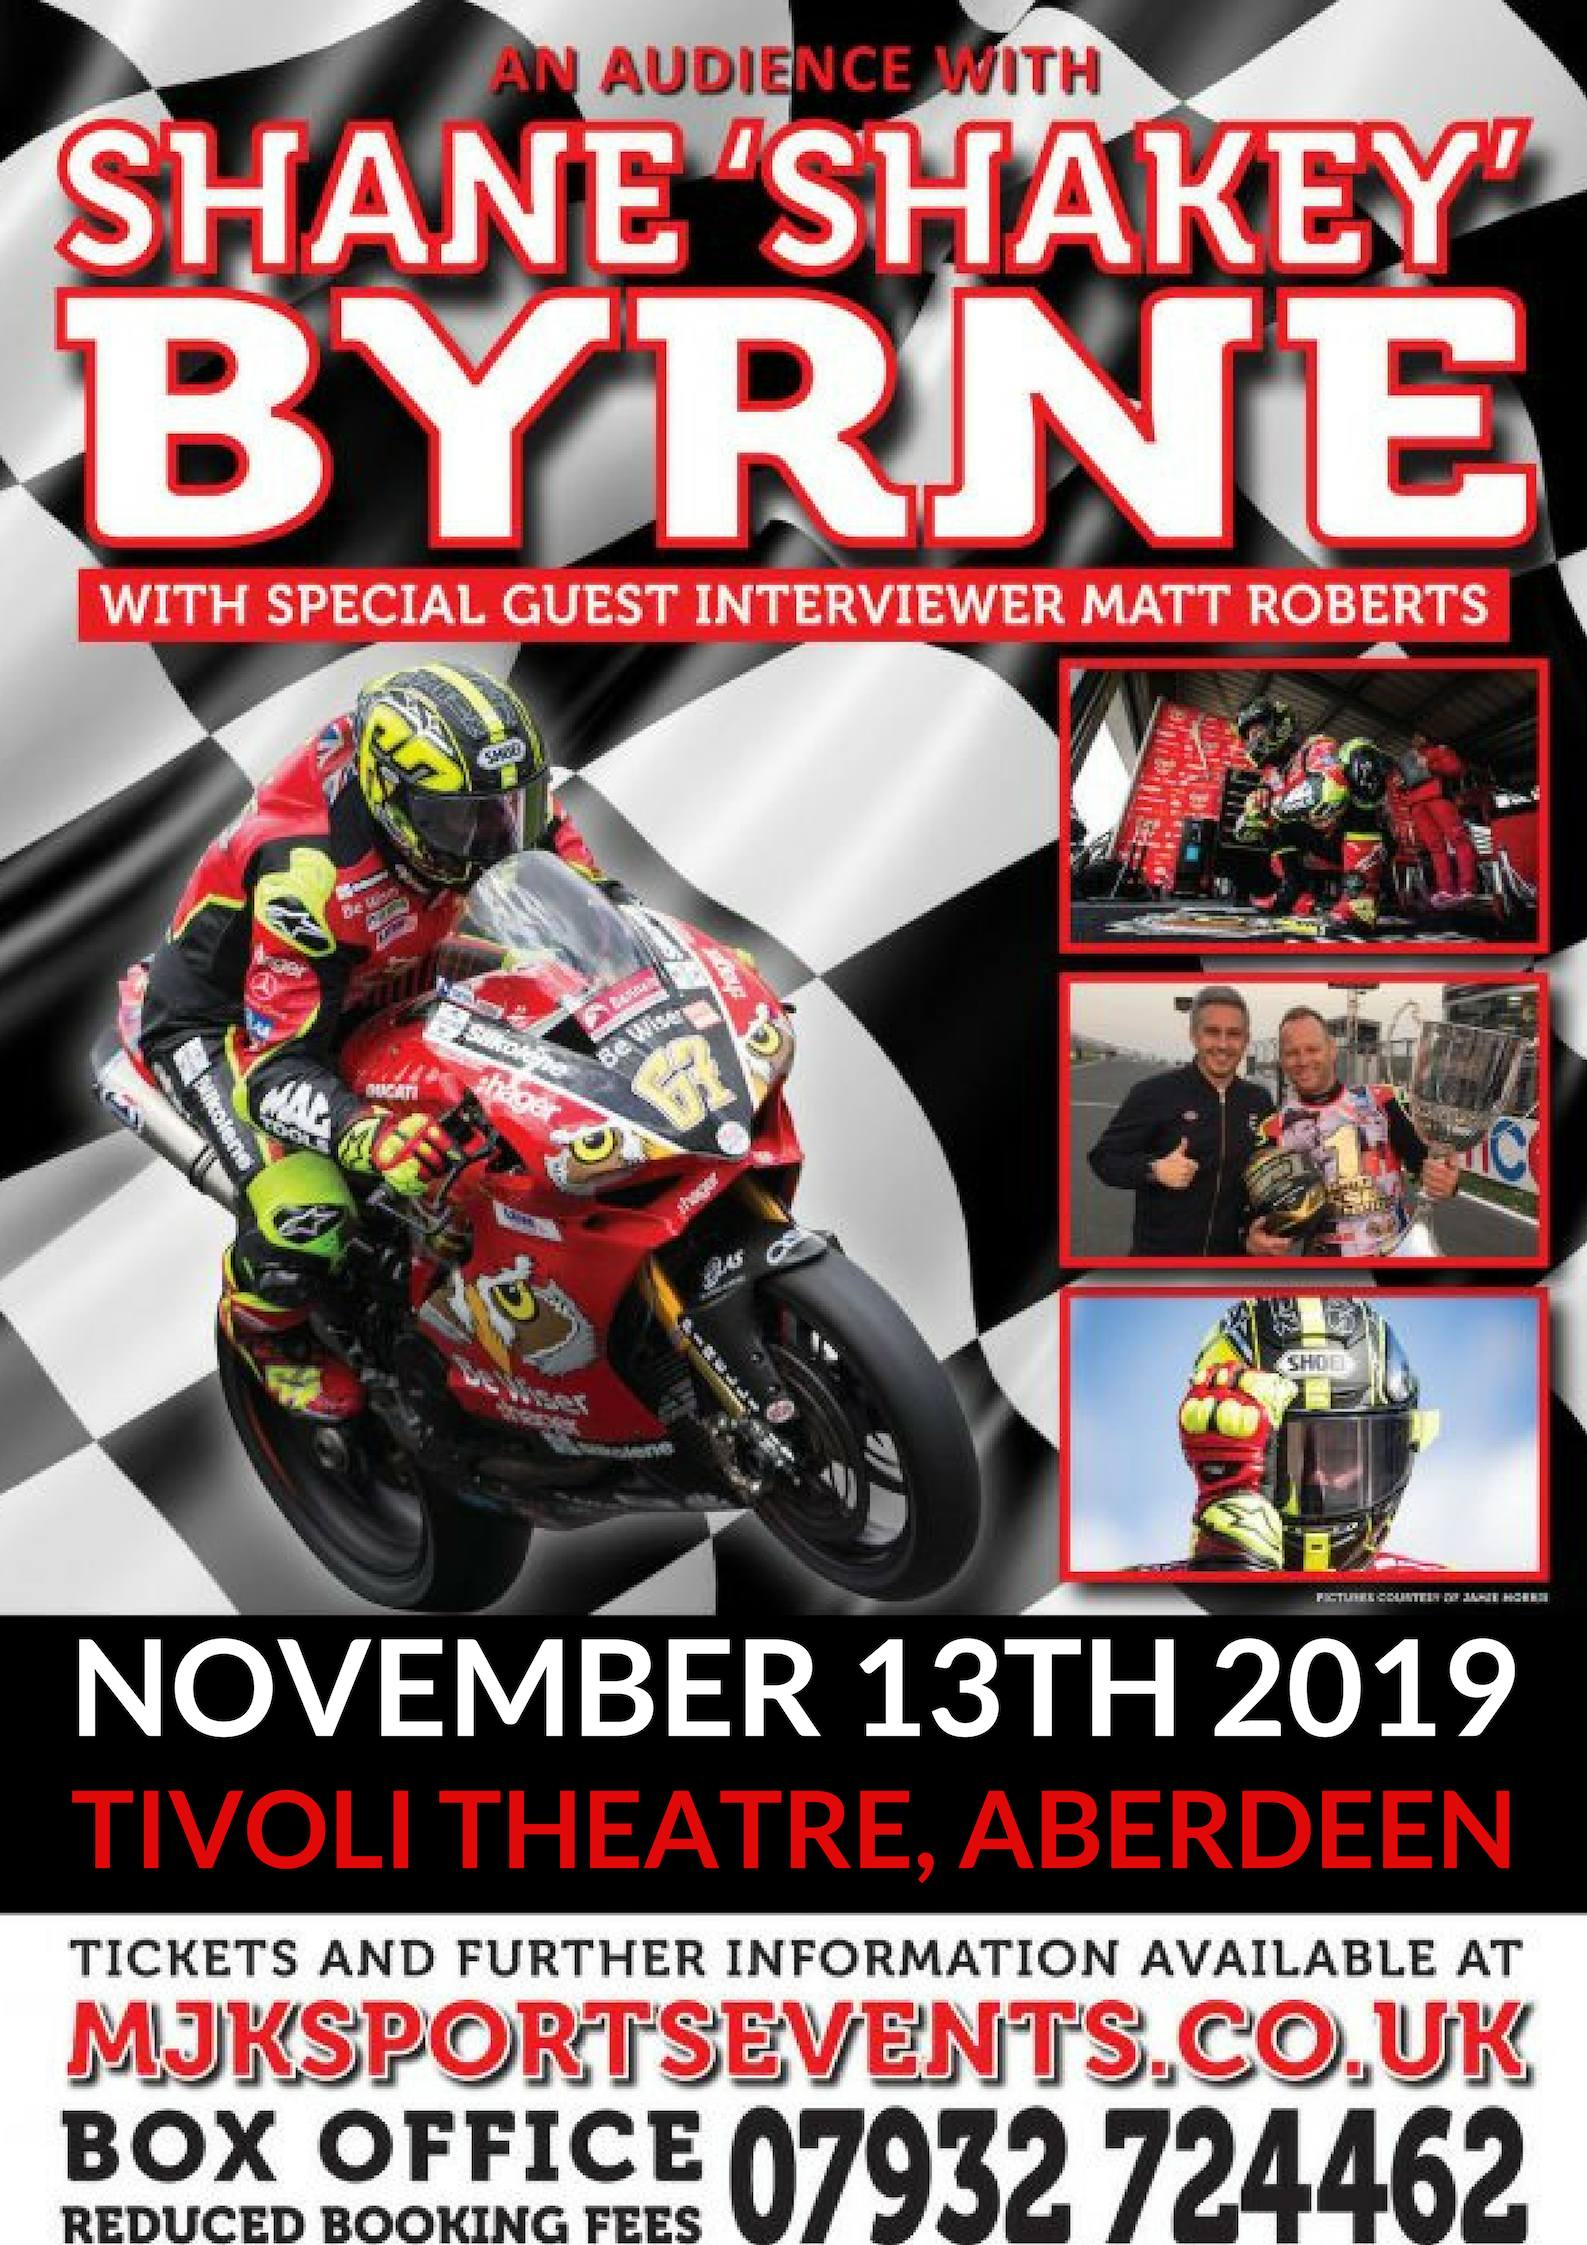 Tickets For Tivoli Theatre Aberdeen An Audience With Shane Shakey Byrne At The Tivoli Theatre Event